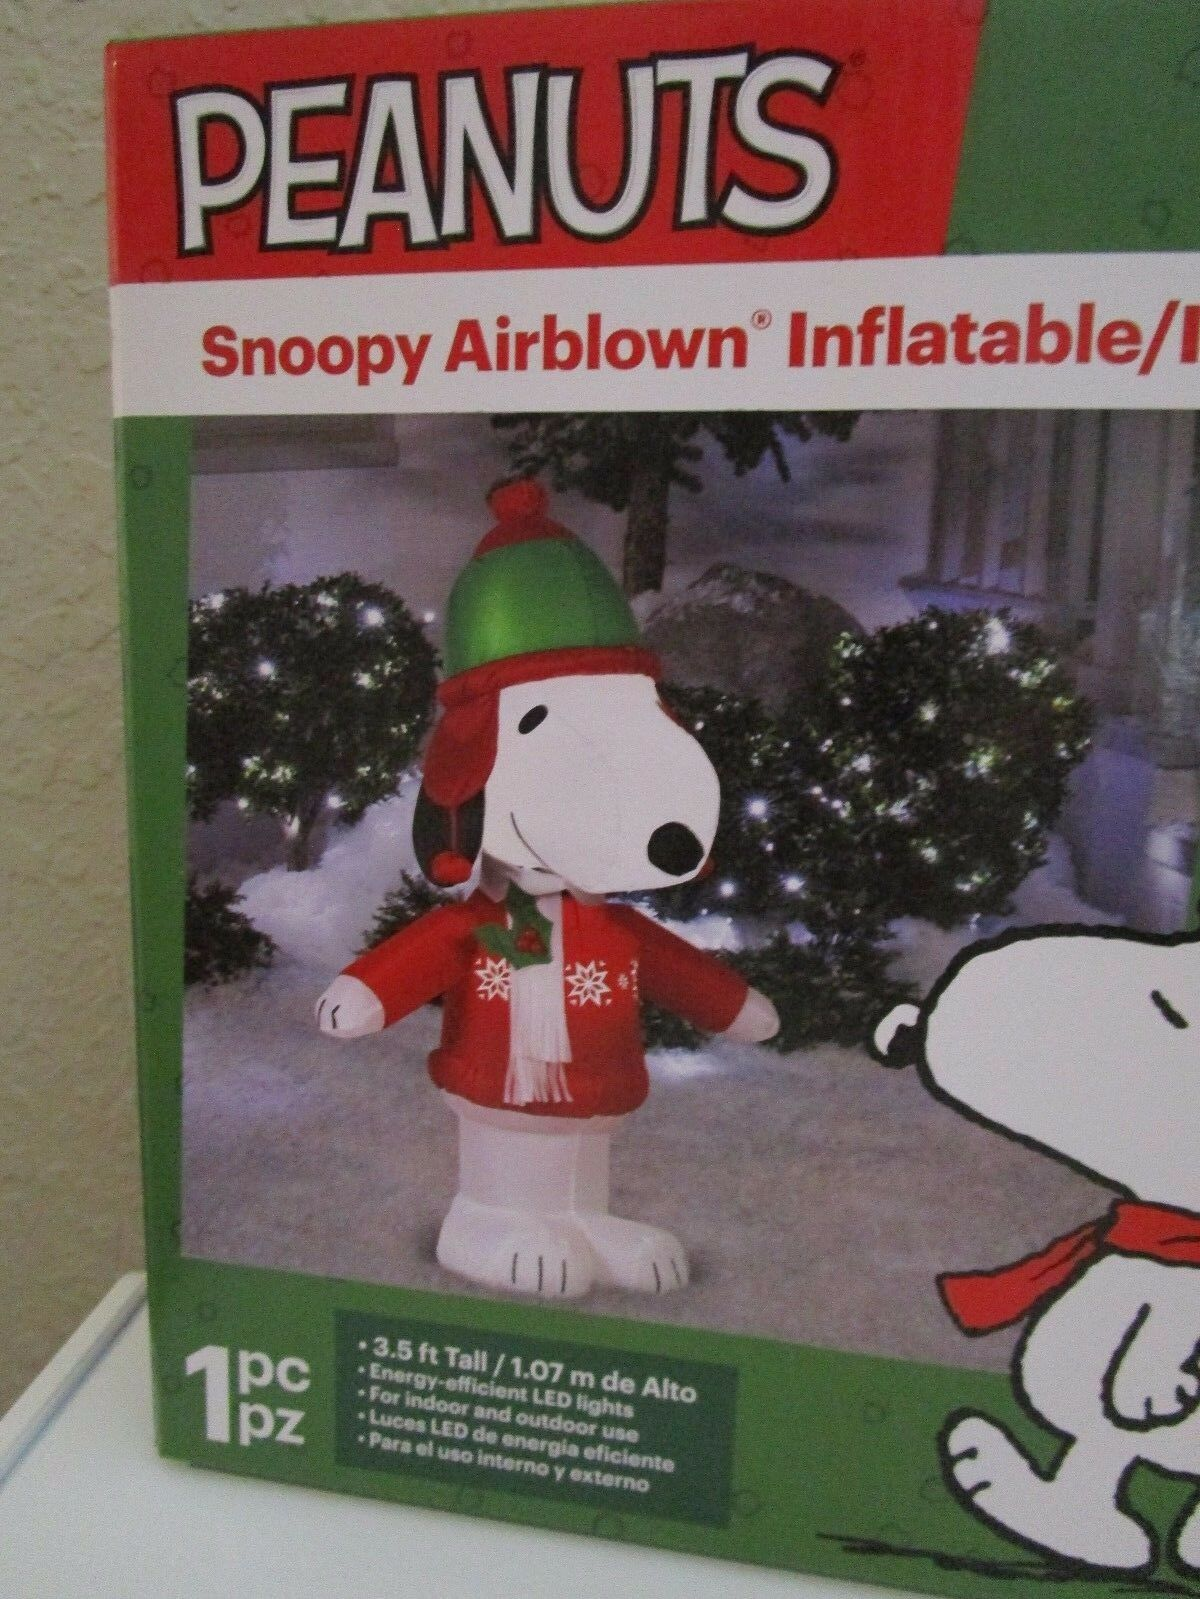 Peanuts Snoopy Christmas Airblown Inflatable 3.5 Ft Tall